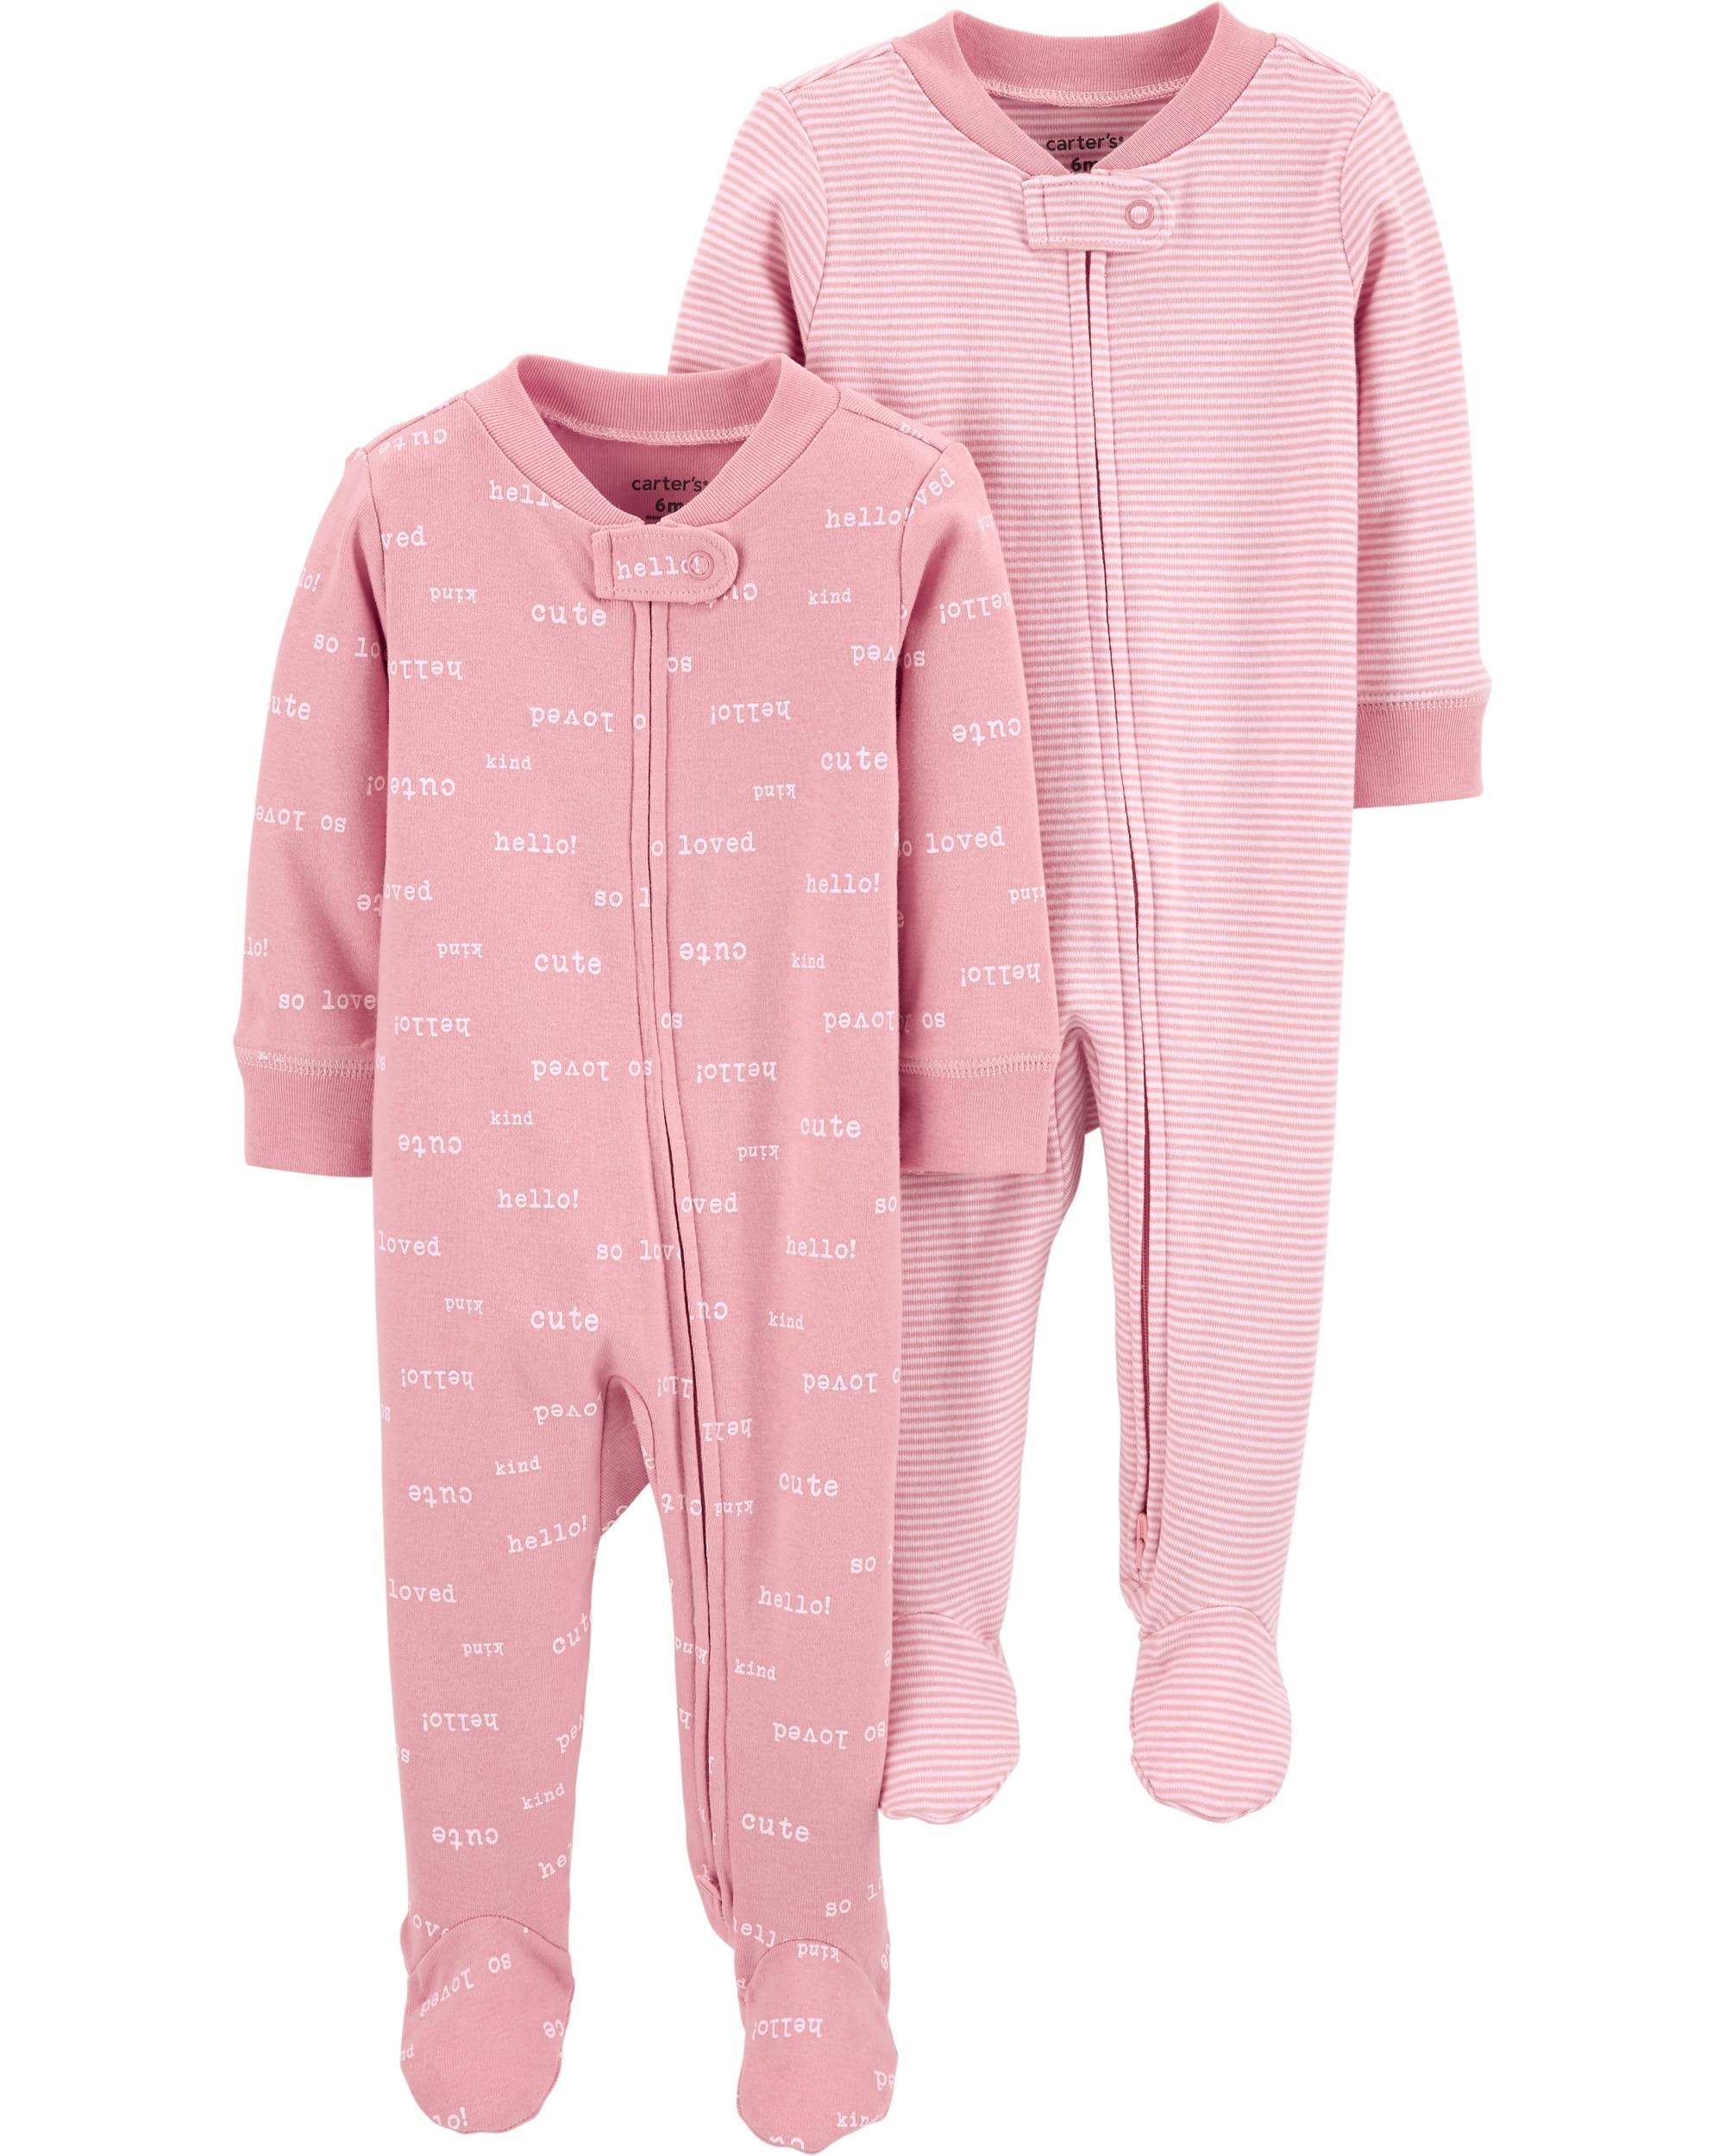 CARTERS Overal na zip SleepPlays Pink dívka LBB 2 ks NBvel. 56